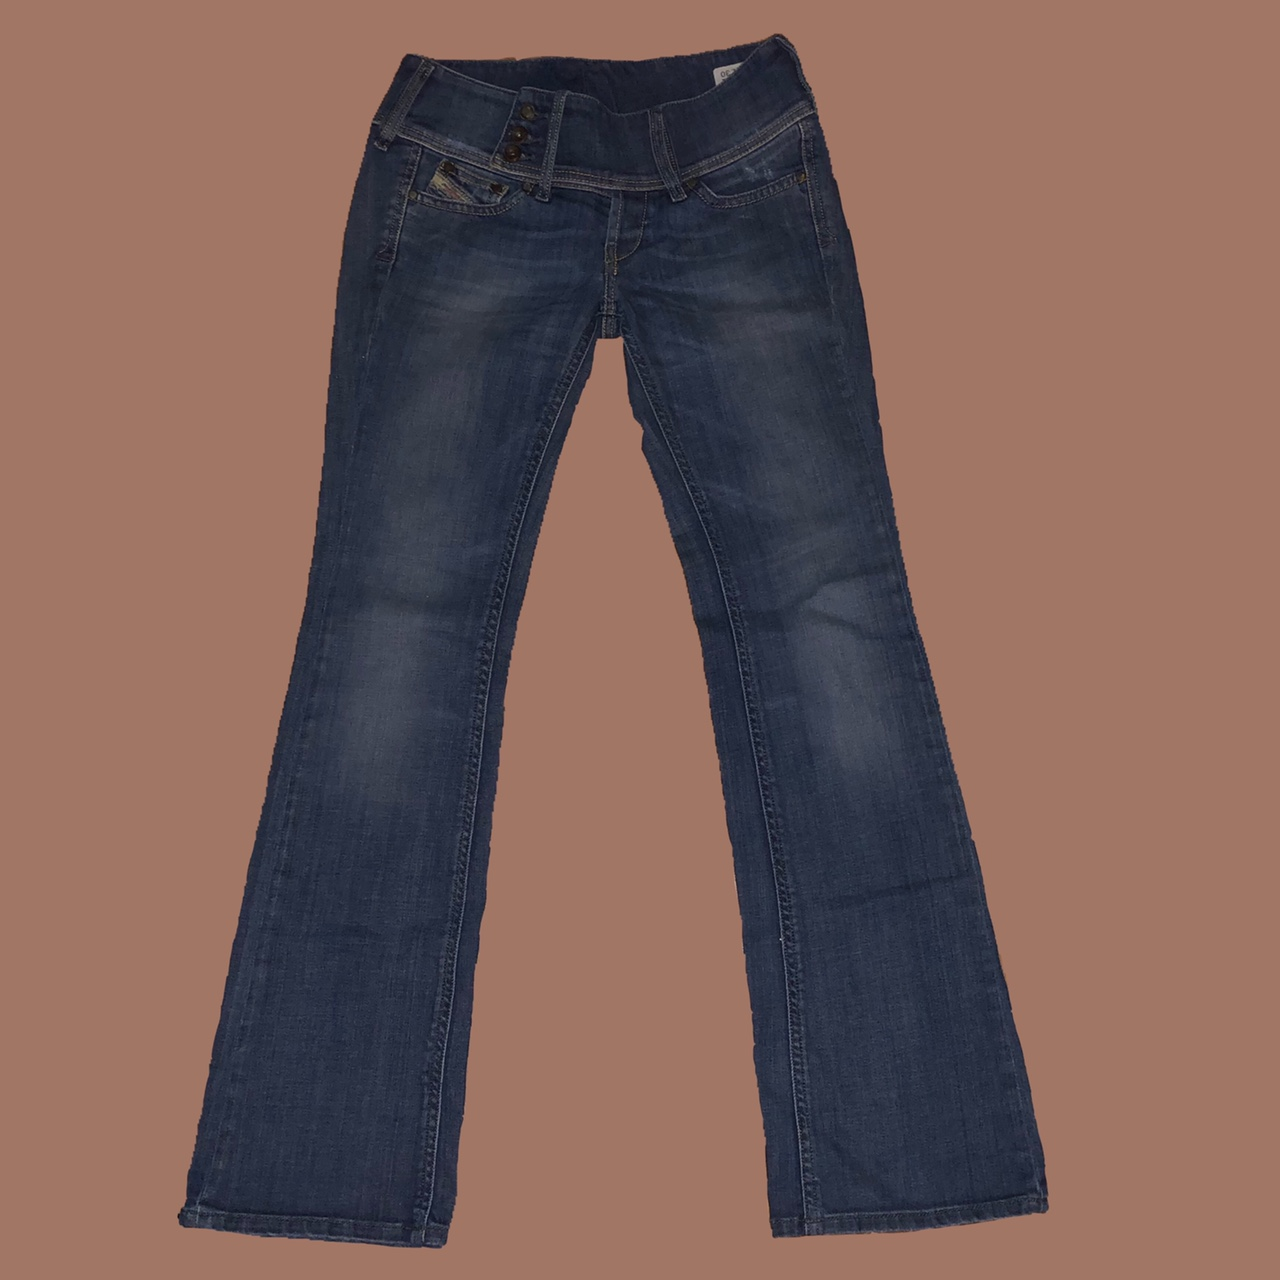 Product Image 1 - 🌸LOW RISE FLARE DIESEL JEANS  🌸size